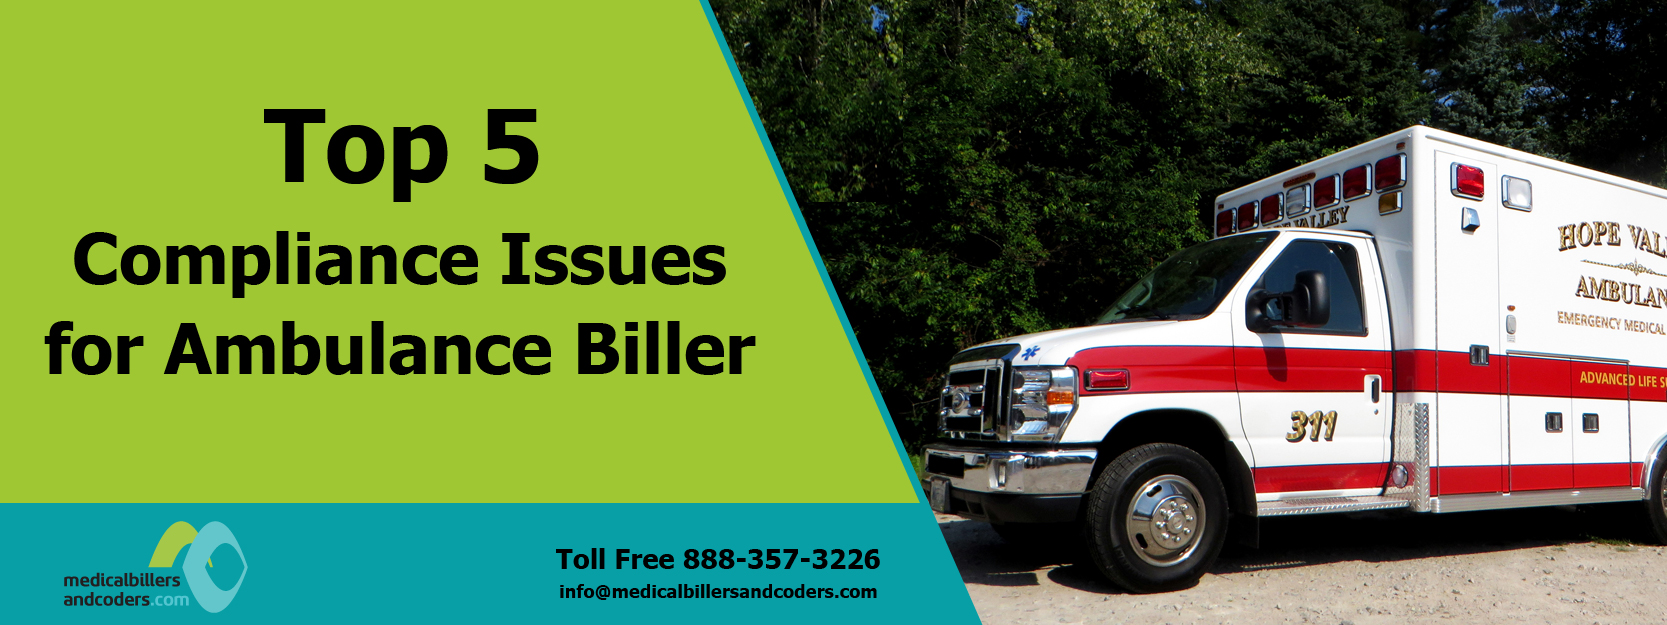 Top 5 Compliance Issues for Ambulance Biller